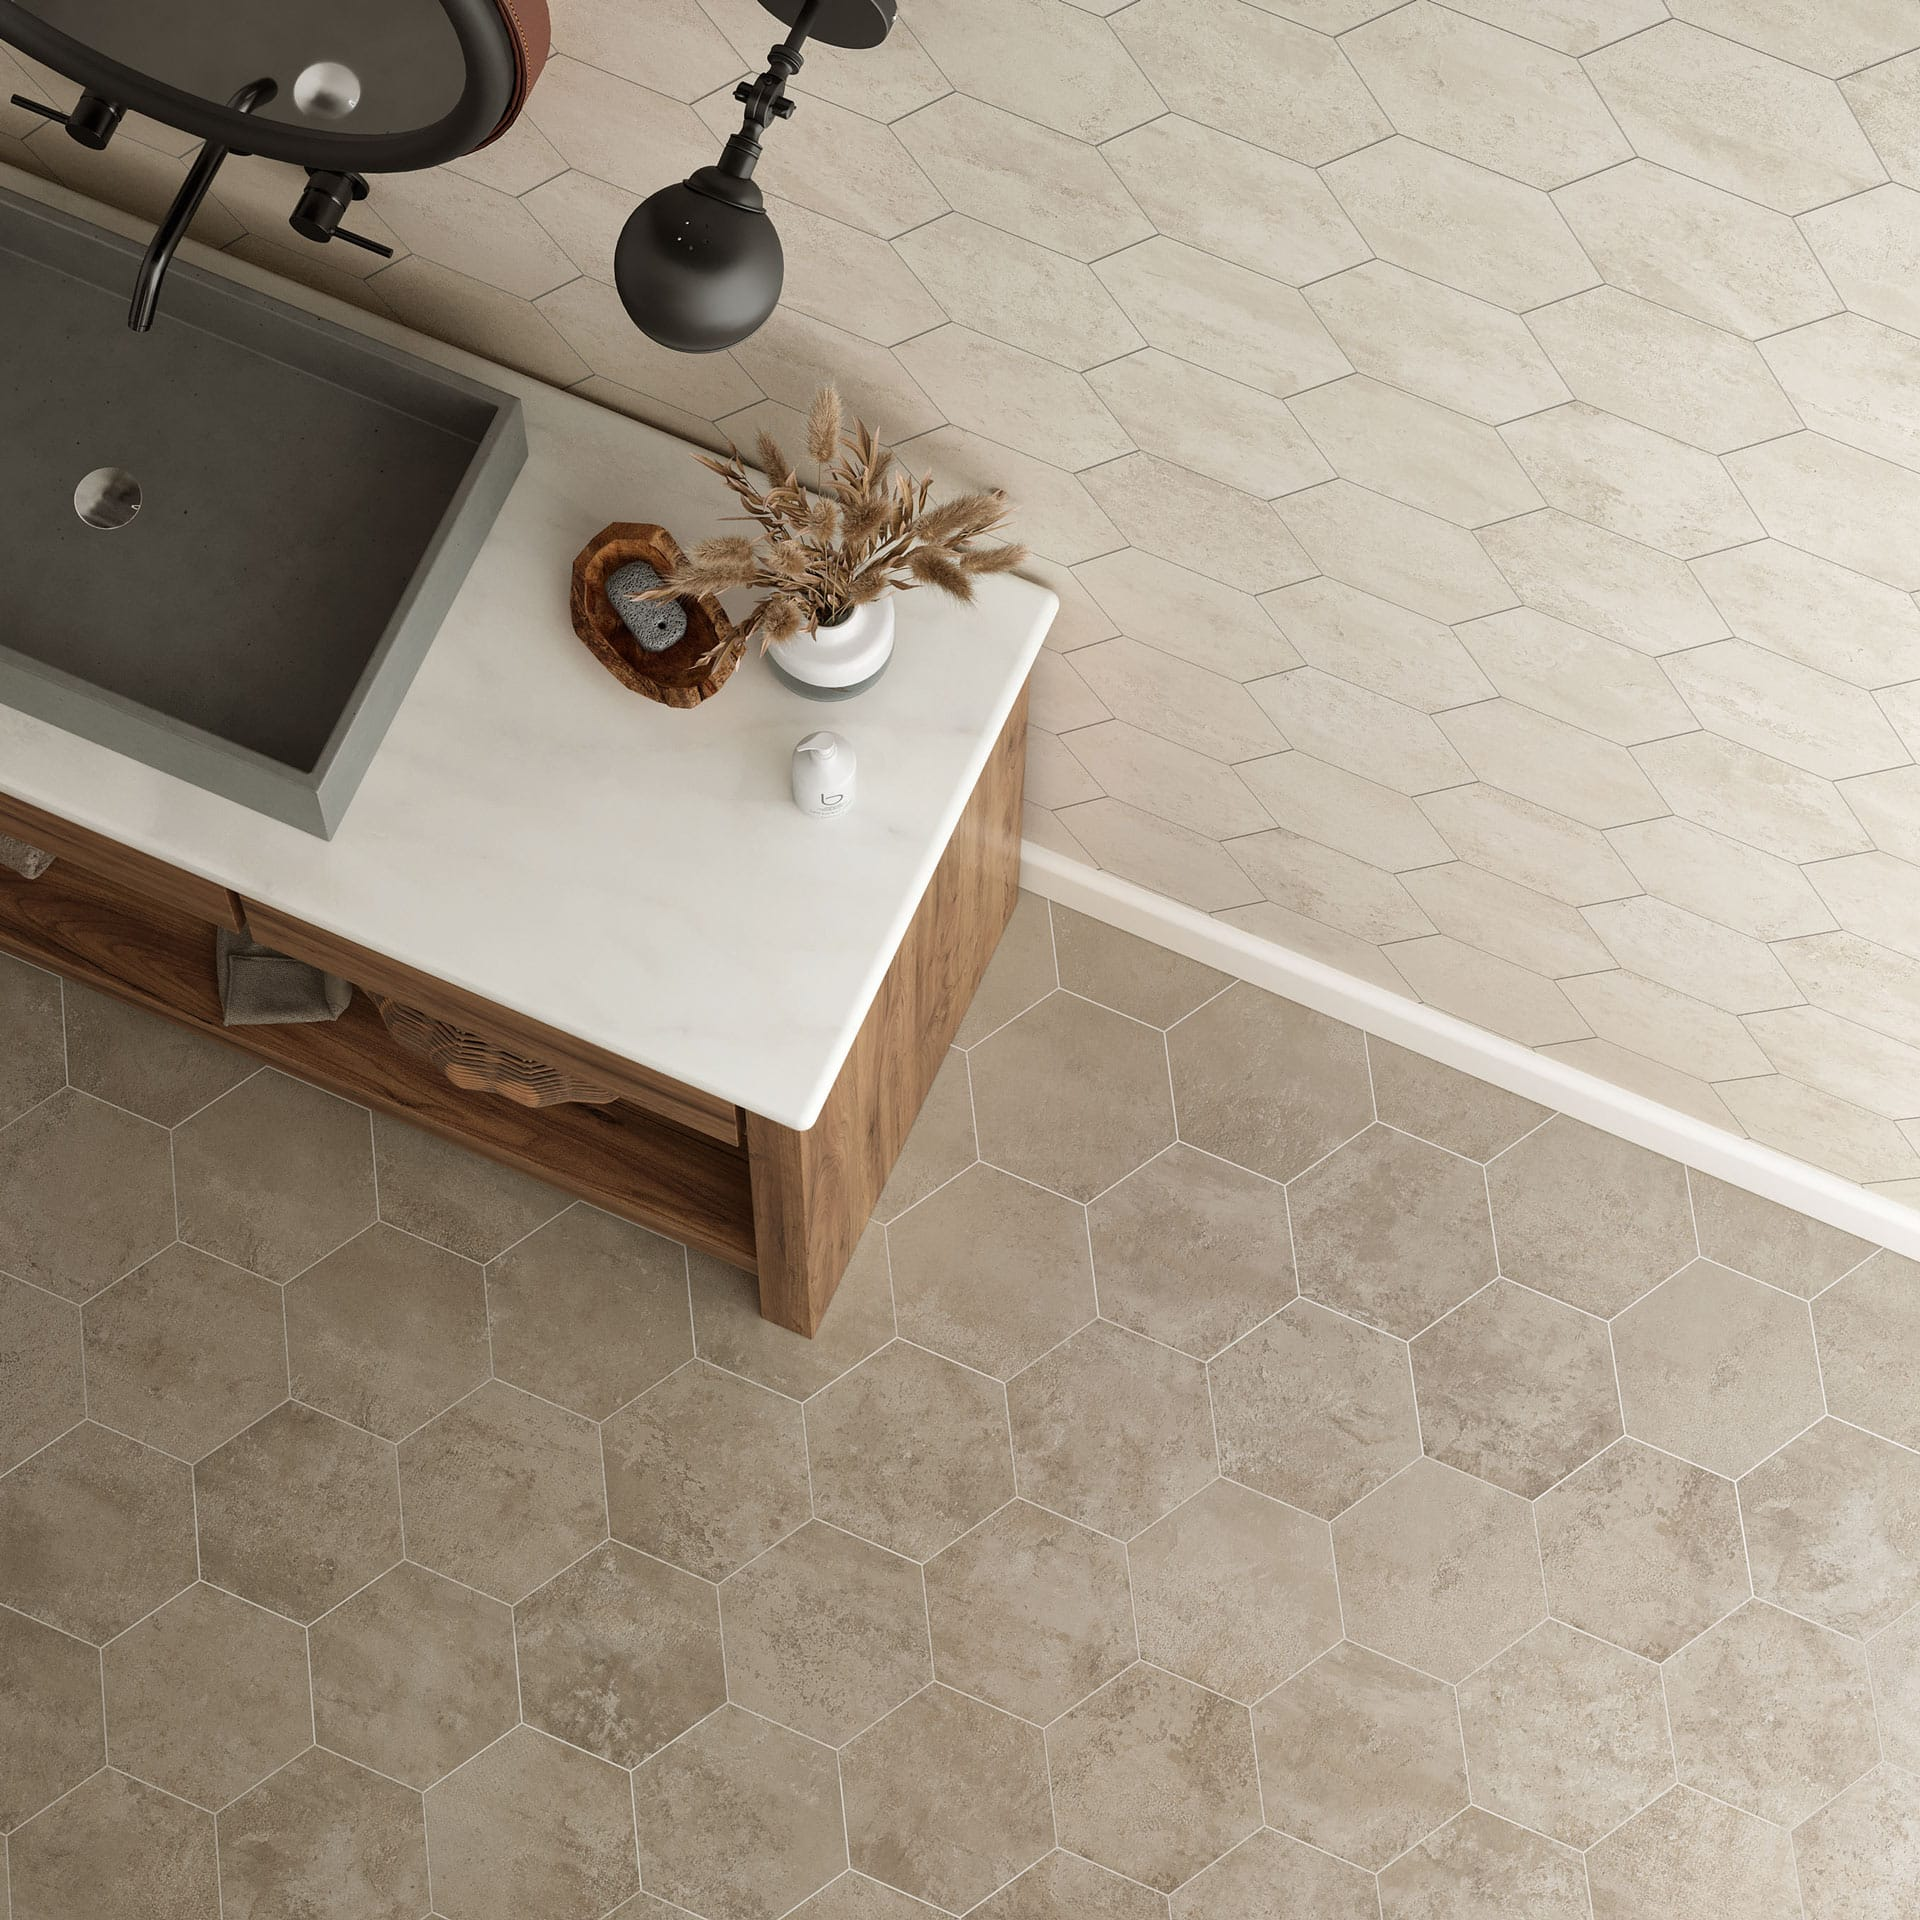 Atlas Concorde USA Exist Pure and Exist Fog hexagon tiles paired together on the floor and wall.